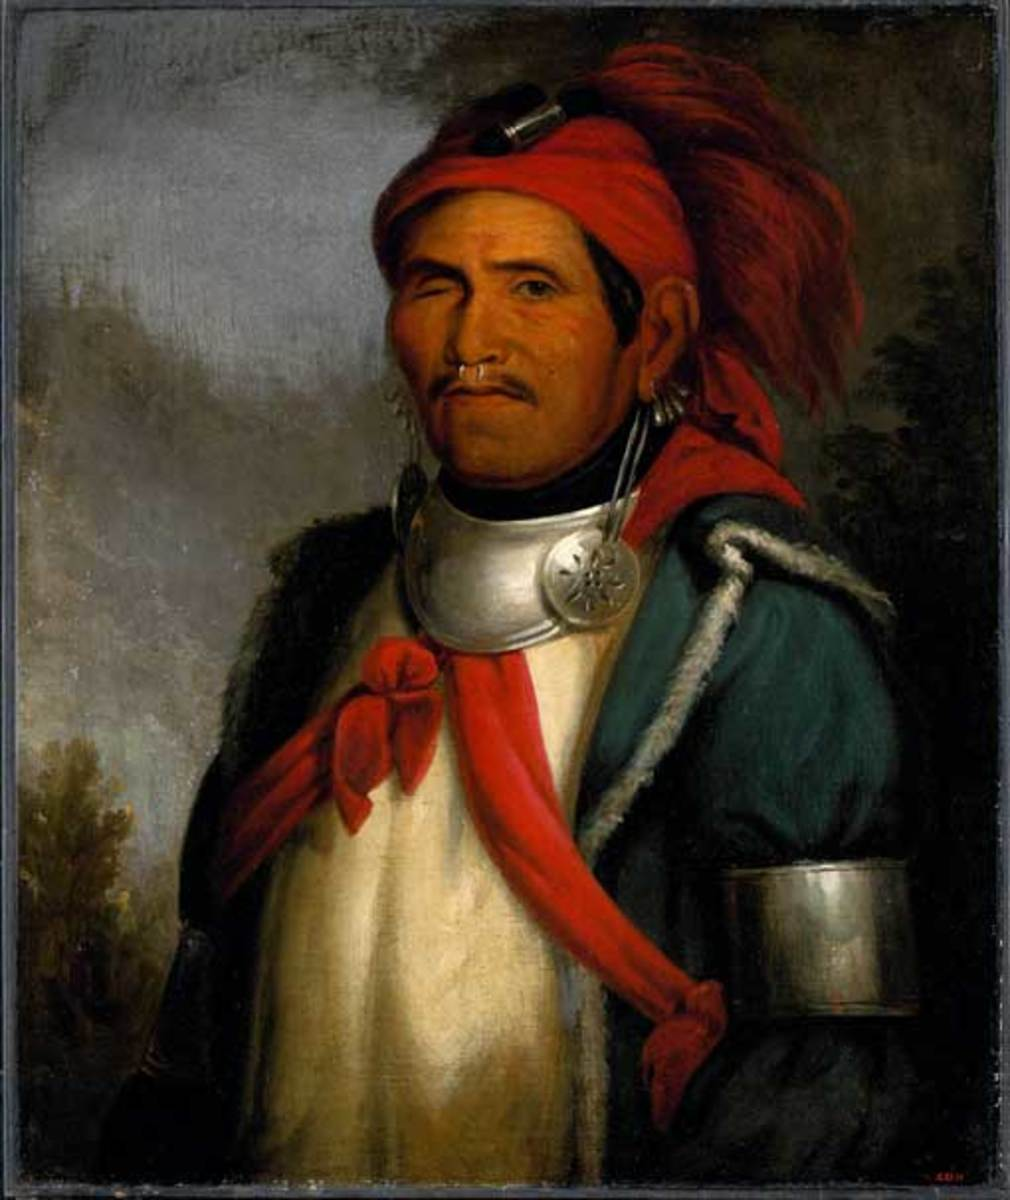 The Prophet--Tenskwatawa, Tecumseh's younger brother, had spiritual visions about a united Indian effort against the corrupting influence of whites.